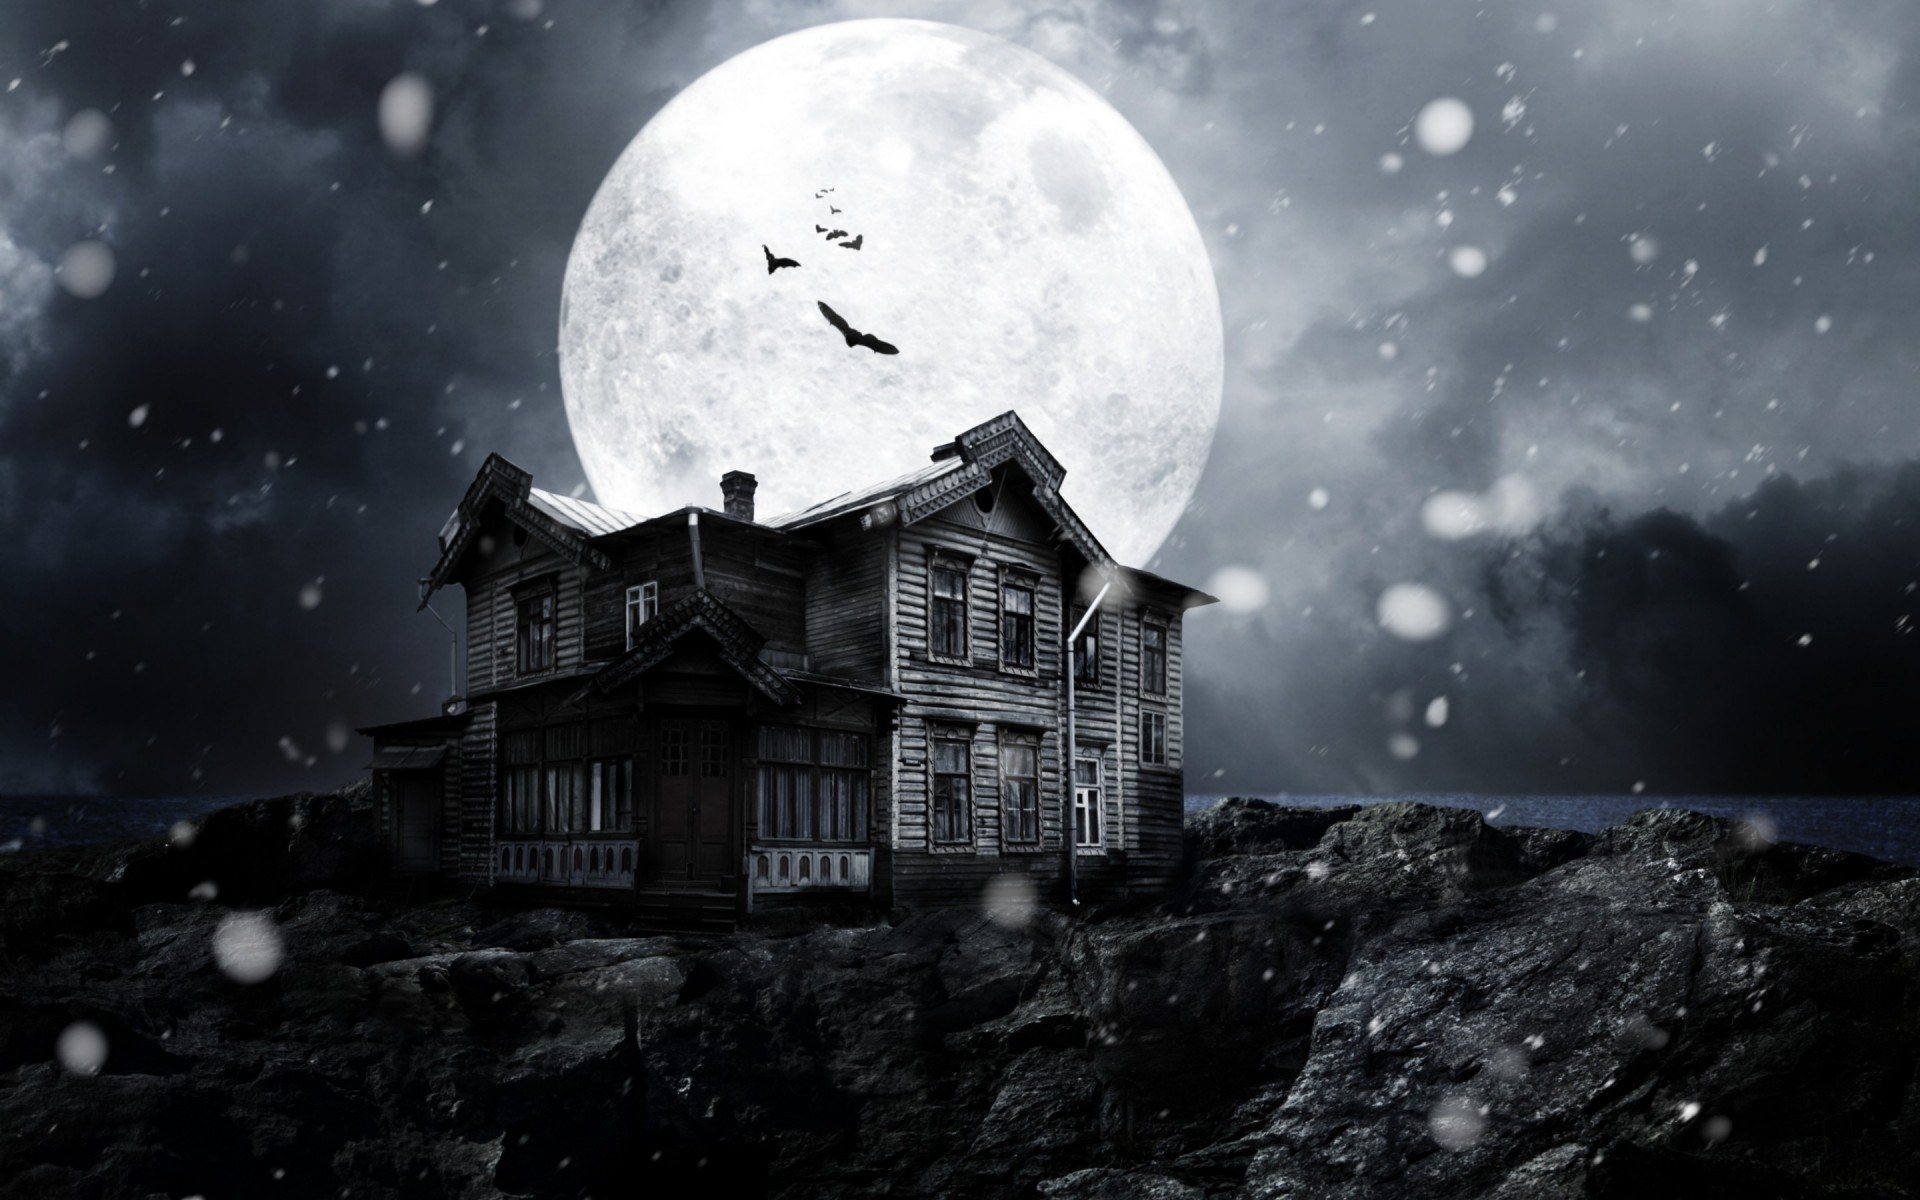 movies moon astronomy snow winter sky light planet exploration space satellite ball-shaped landscape travel science a haunted house